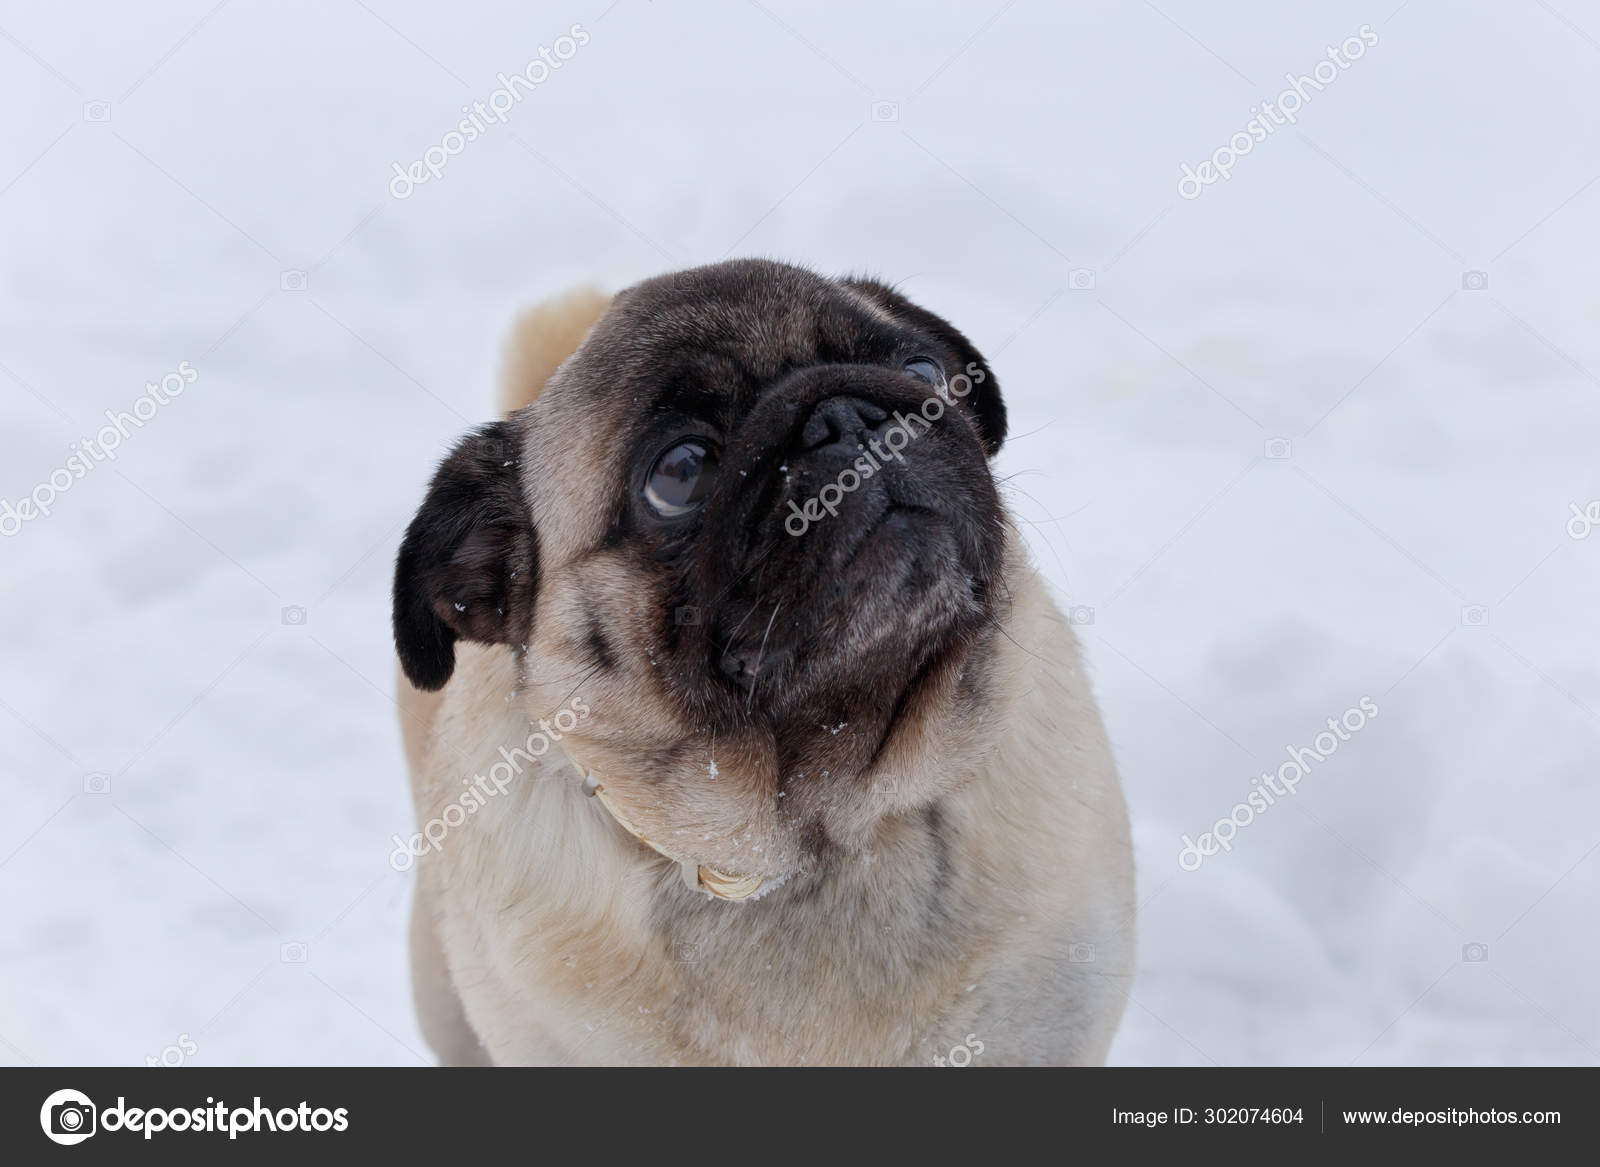 Cute Chinese Pug Puppy On A Background Of White Snow Dutch Mastiff Or Mops Pet Animals Stock Photo C Sergeytikhomirov 302074604